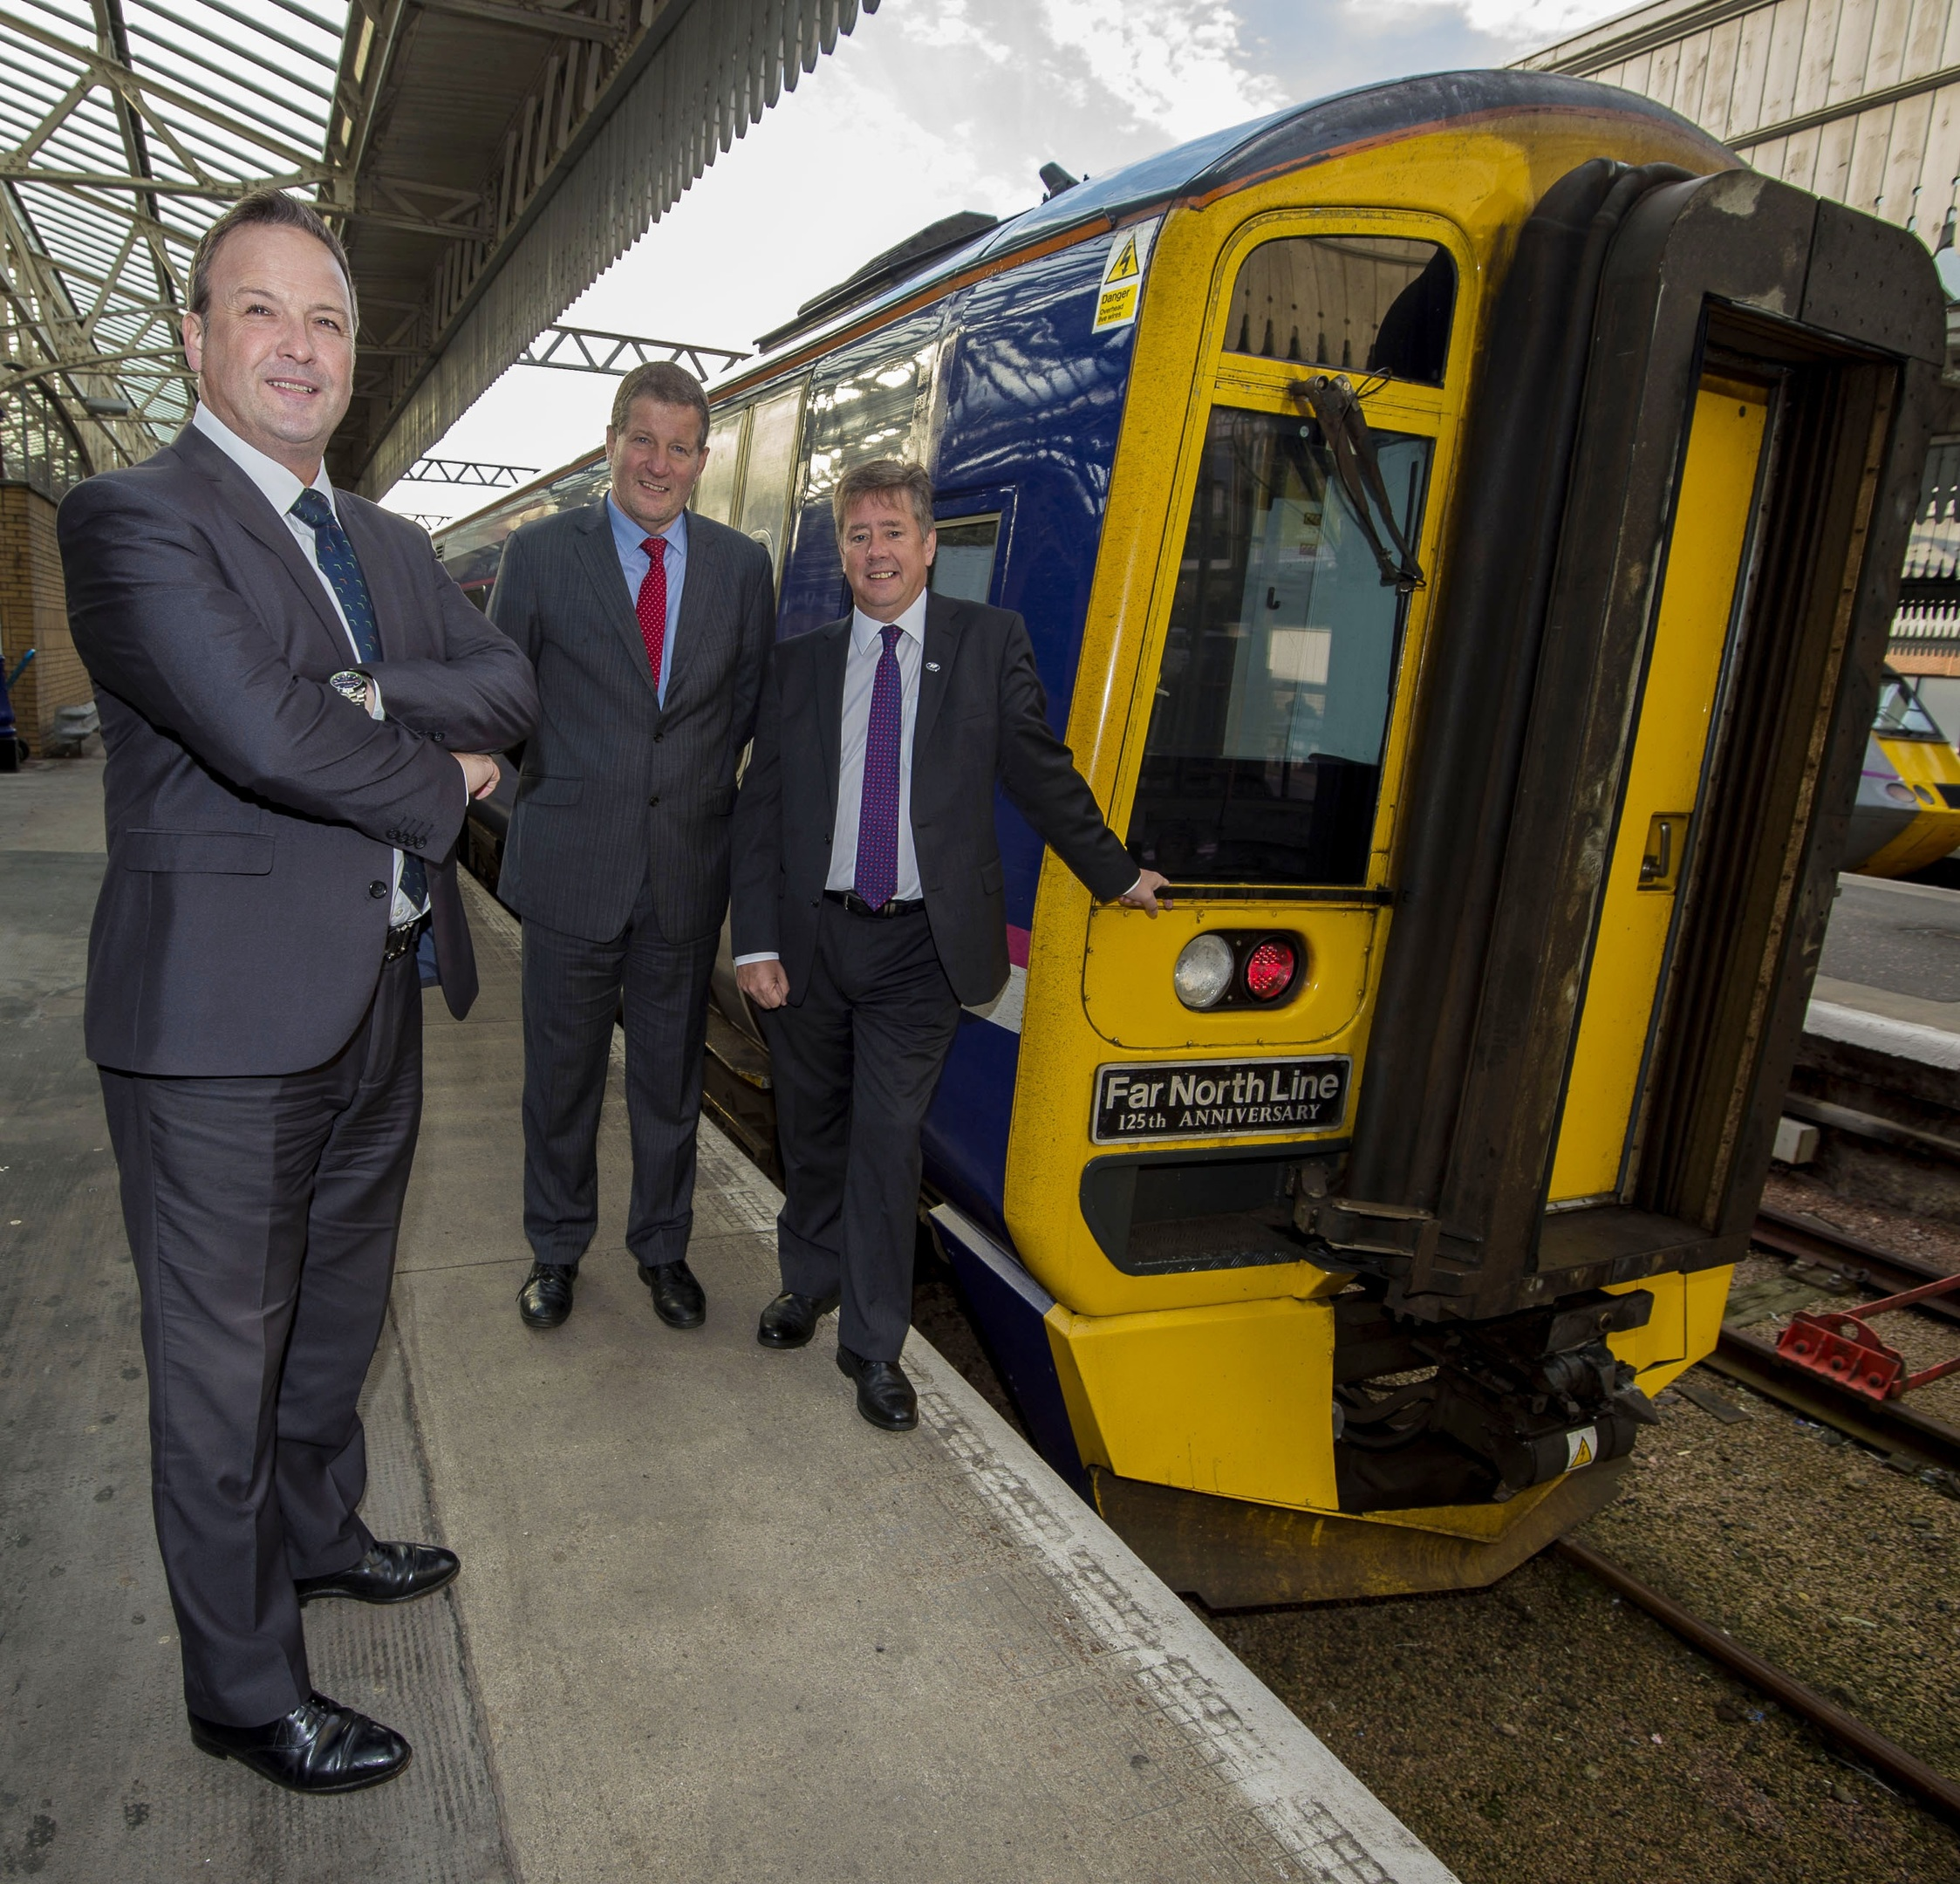 Infrastructure secretary Keith Brown MSP announces BAM as principal contractor for the £170m upgrade of the Aberdeen-Inverness line.